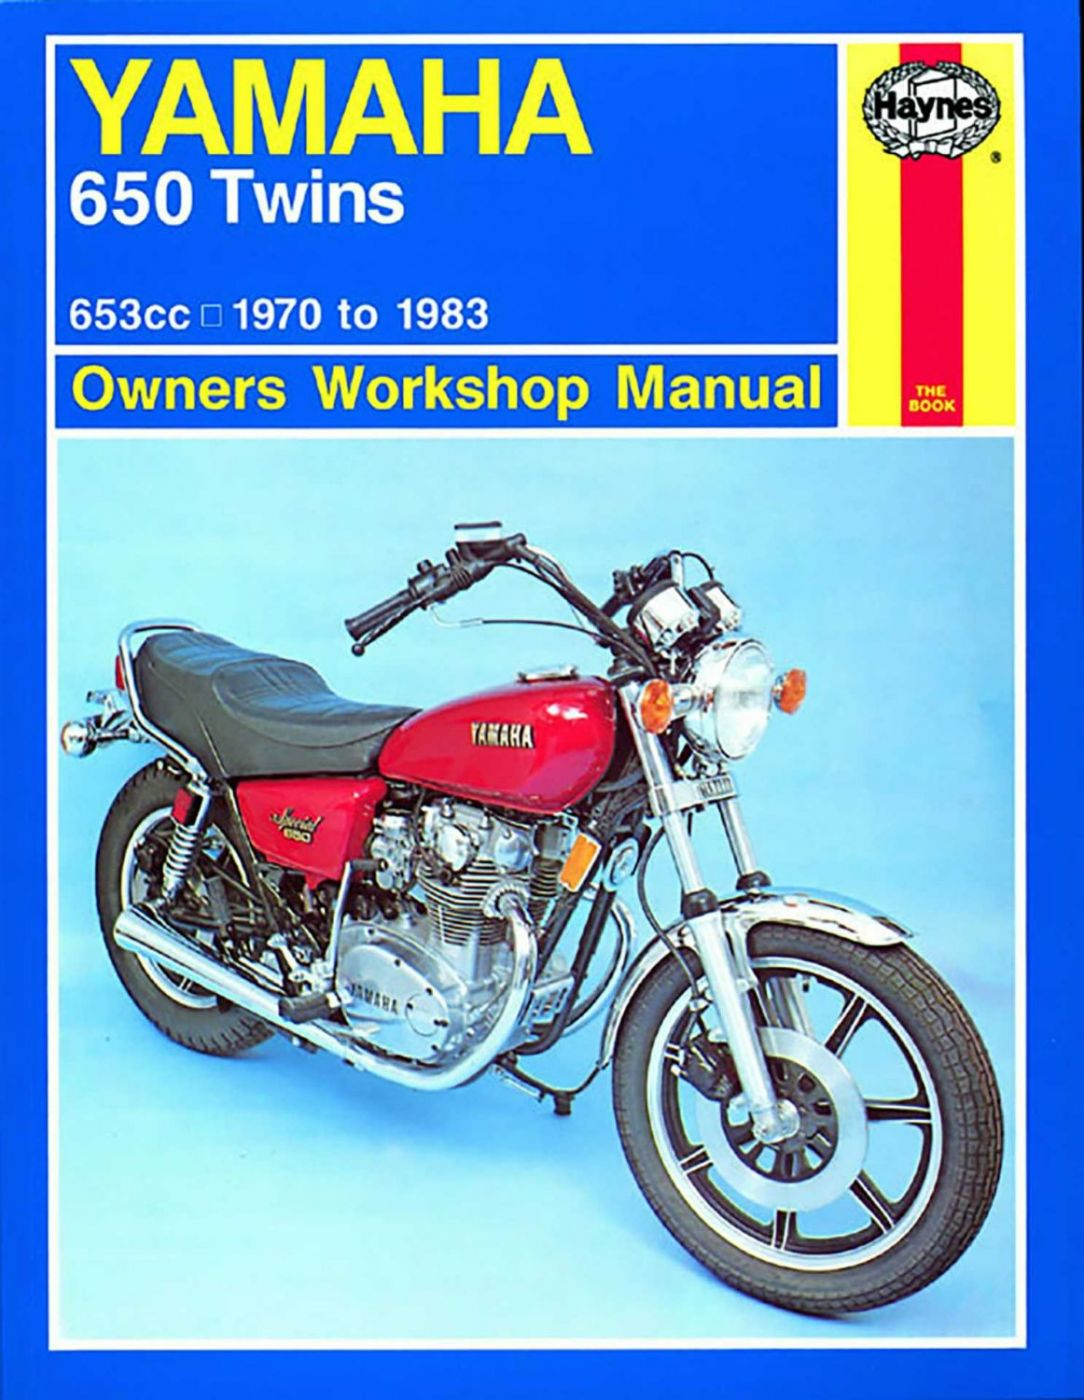 Haynes Manuals - 680341Y image